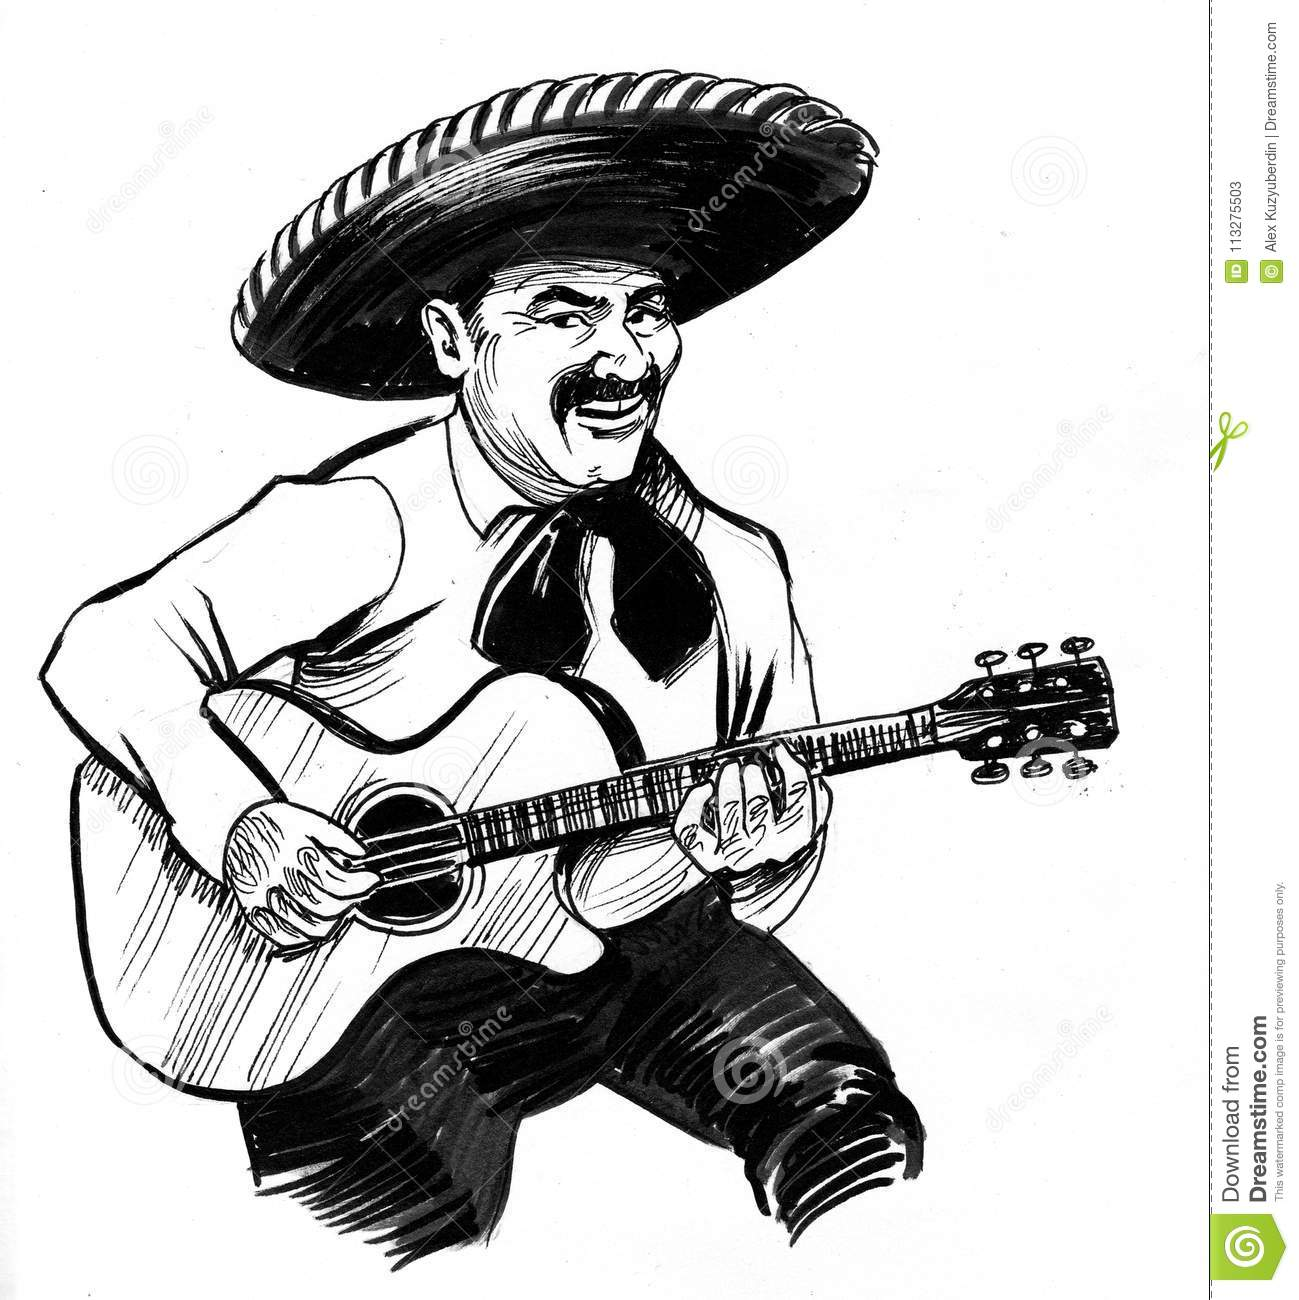 Mexicaanse musicus